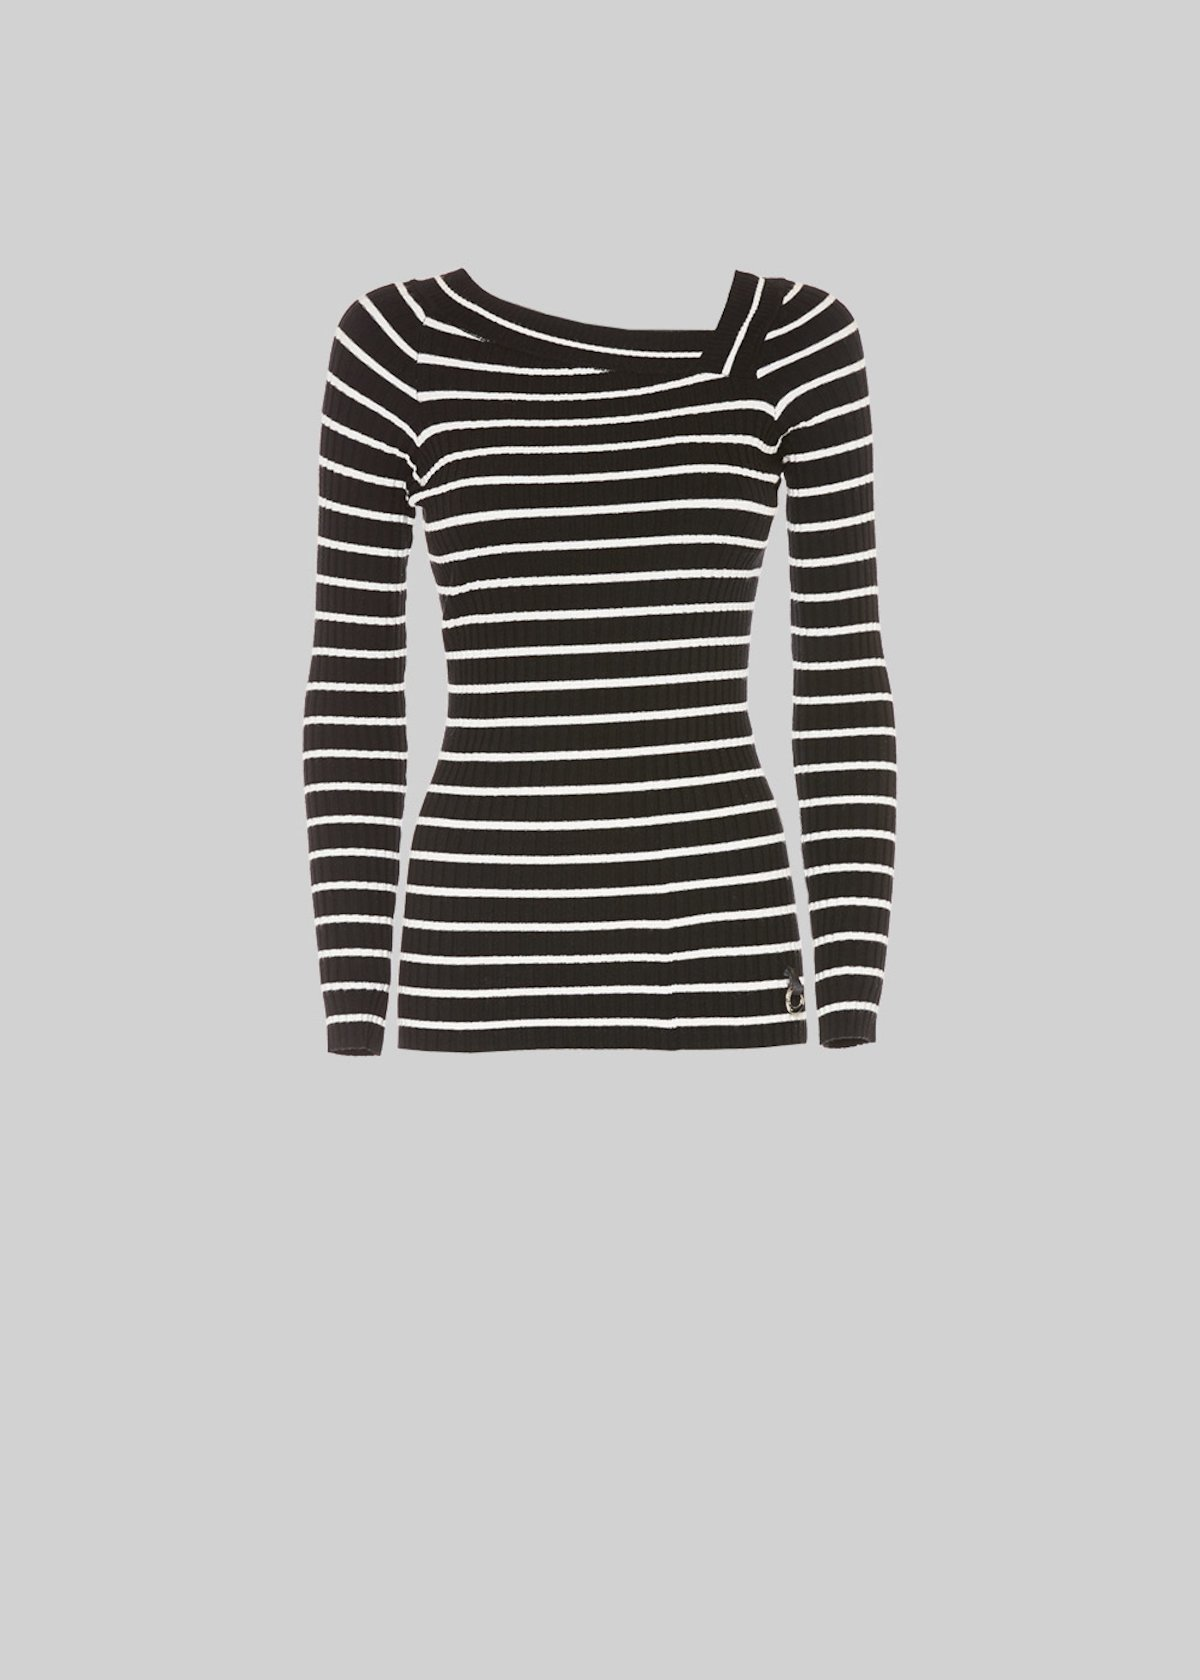 Monkey stripe fantasy sweater with asymmetrical collar - Black / White Stripes - Woman - Category image